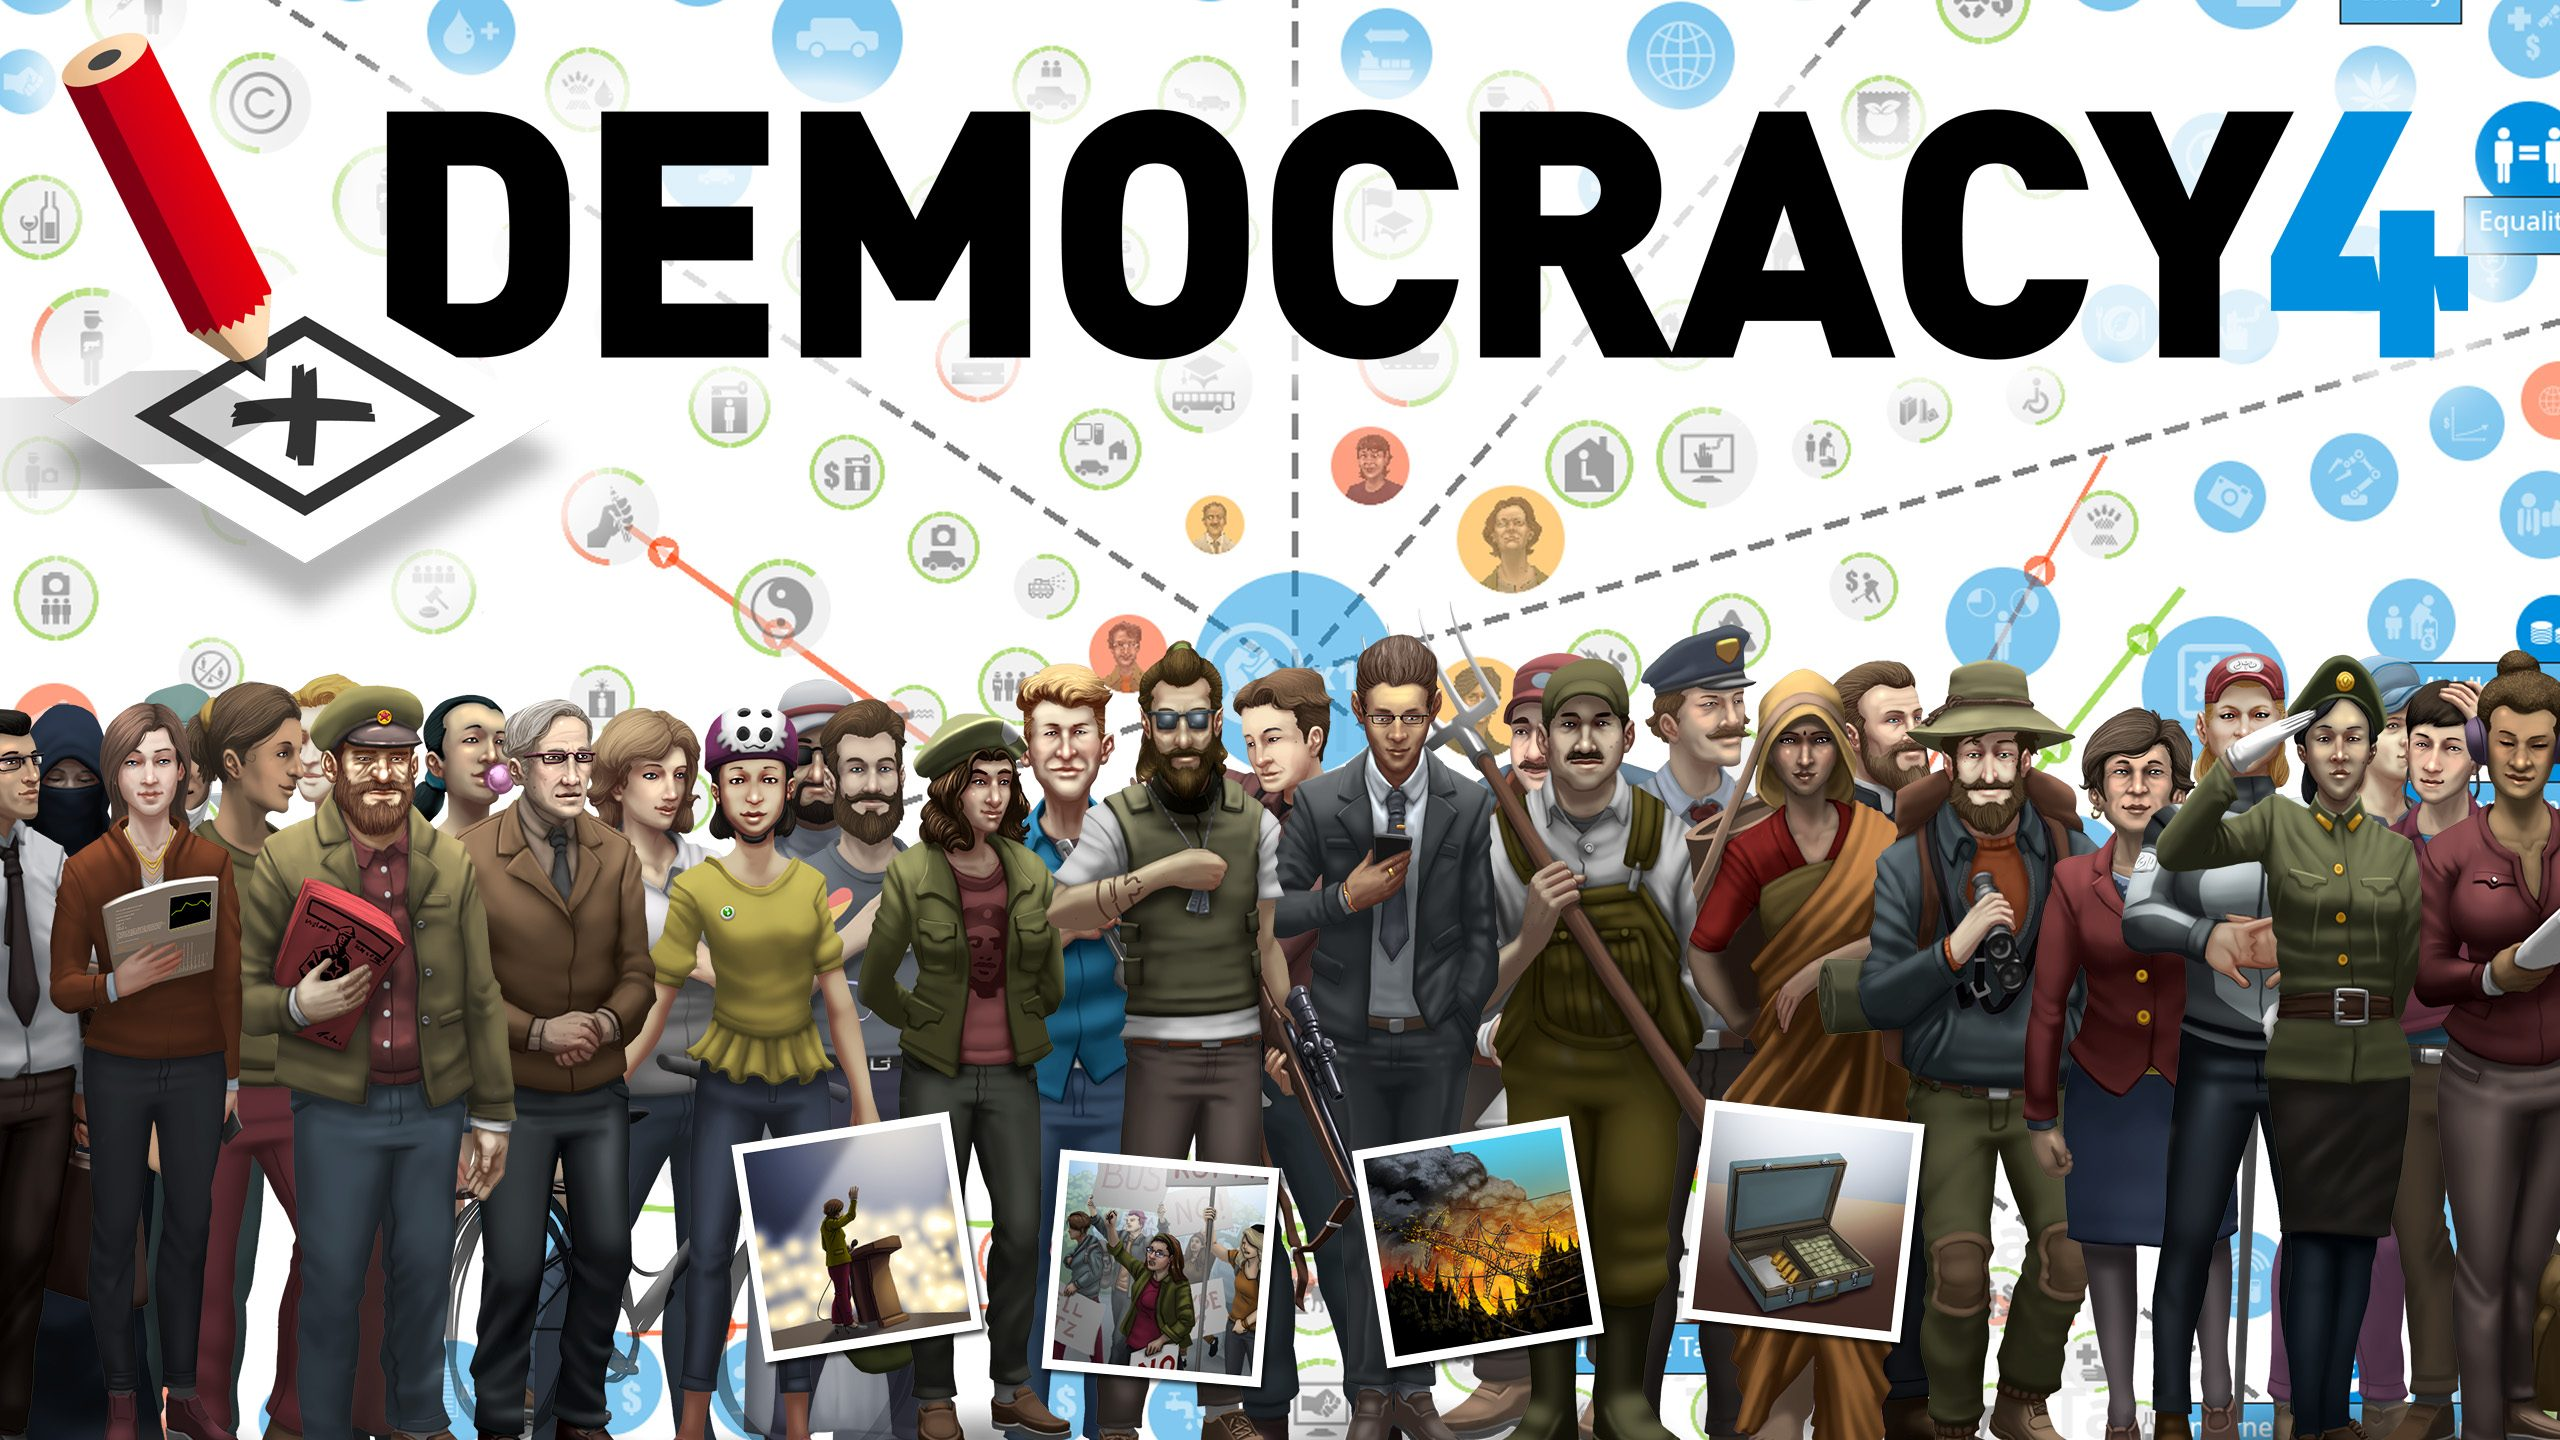 egs_theultimatepoliticalstrategygameisback_positechgames_s1-2560x1440-33f27e8ec9ac5a10cd1318a5e3d1d591-7885249